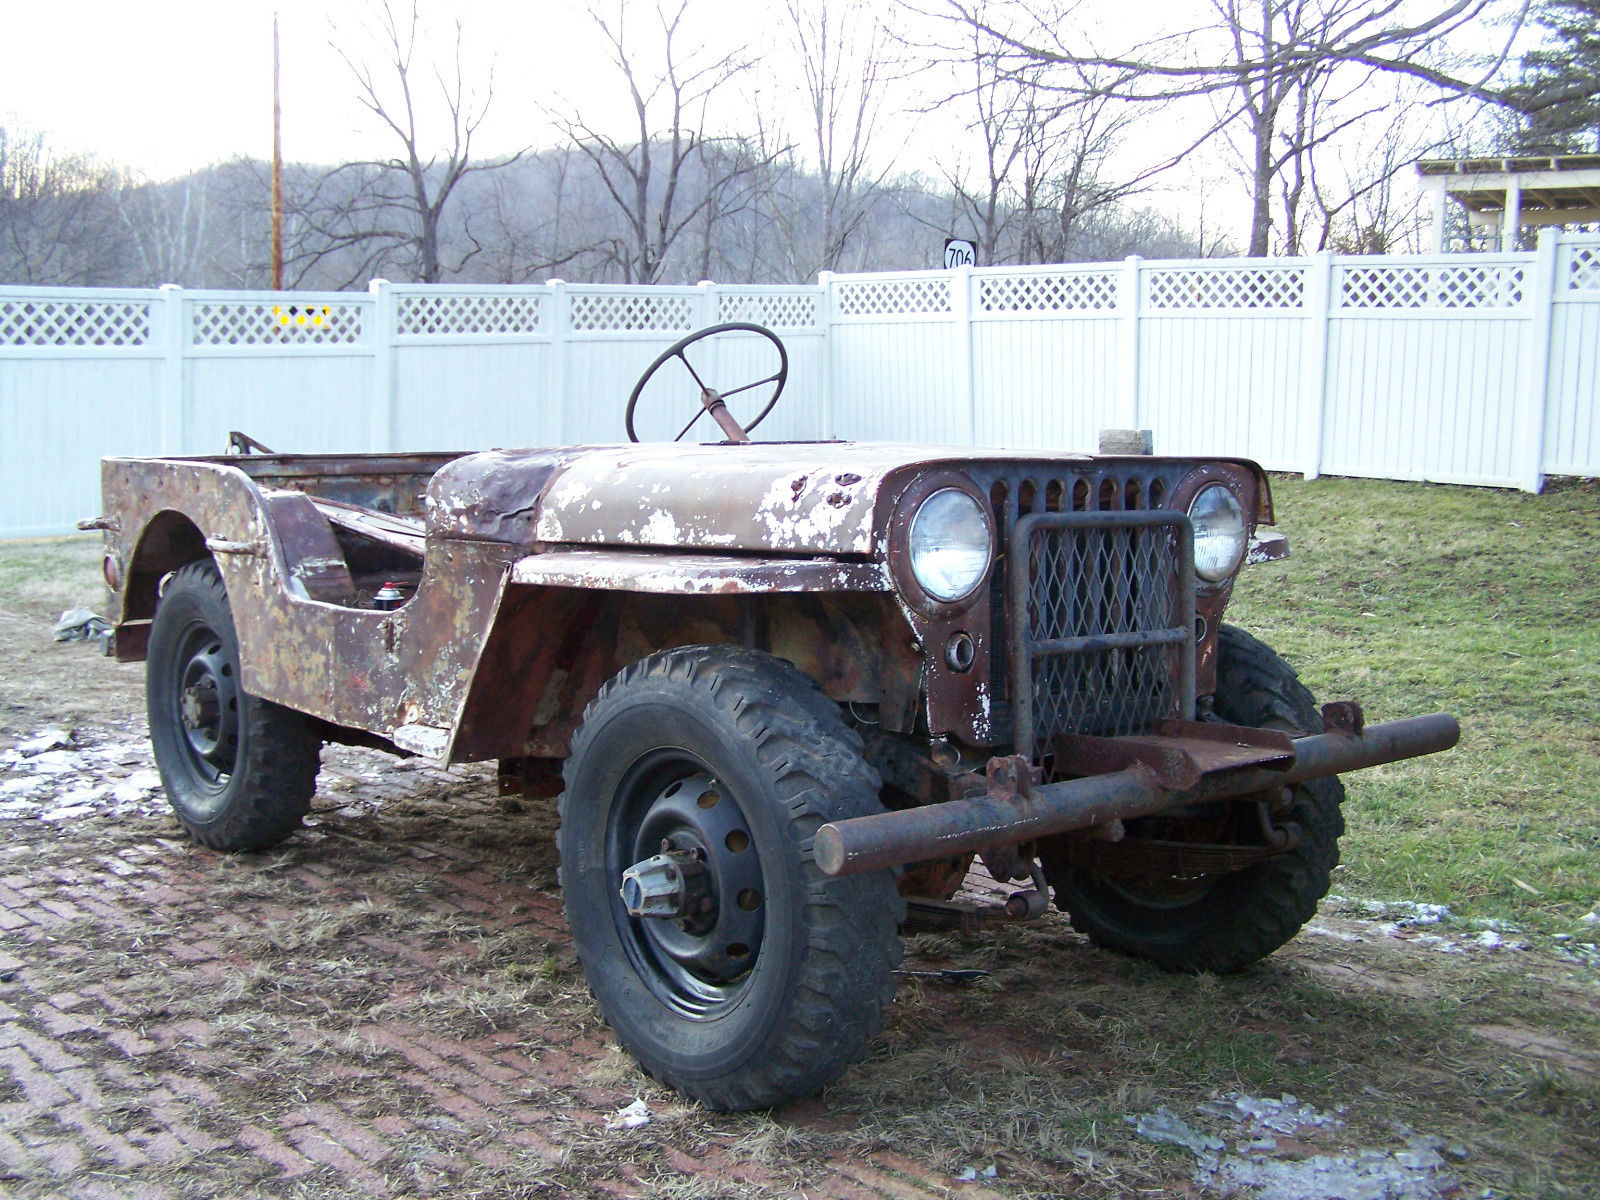 1943 Willys-Ford GPW Jeep - Classic Willys Ford GPW 1943 for sale